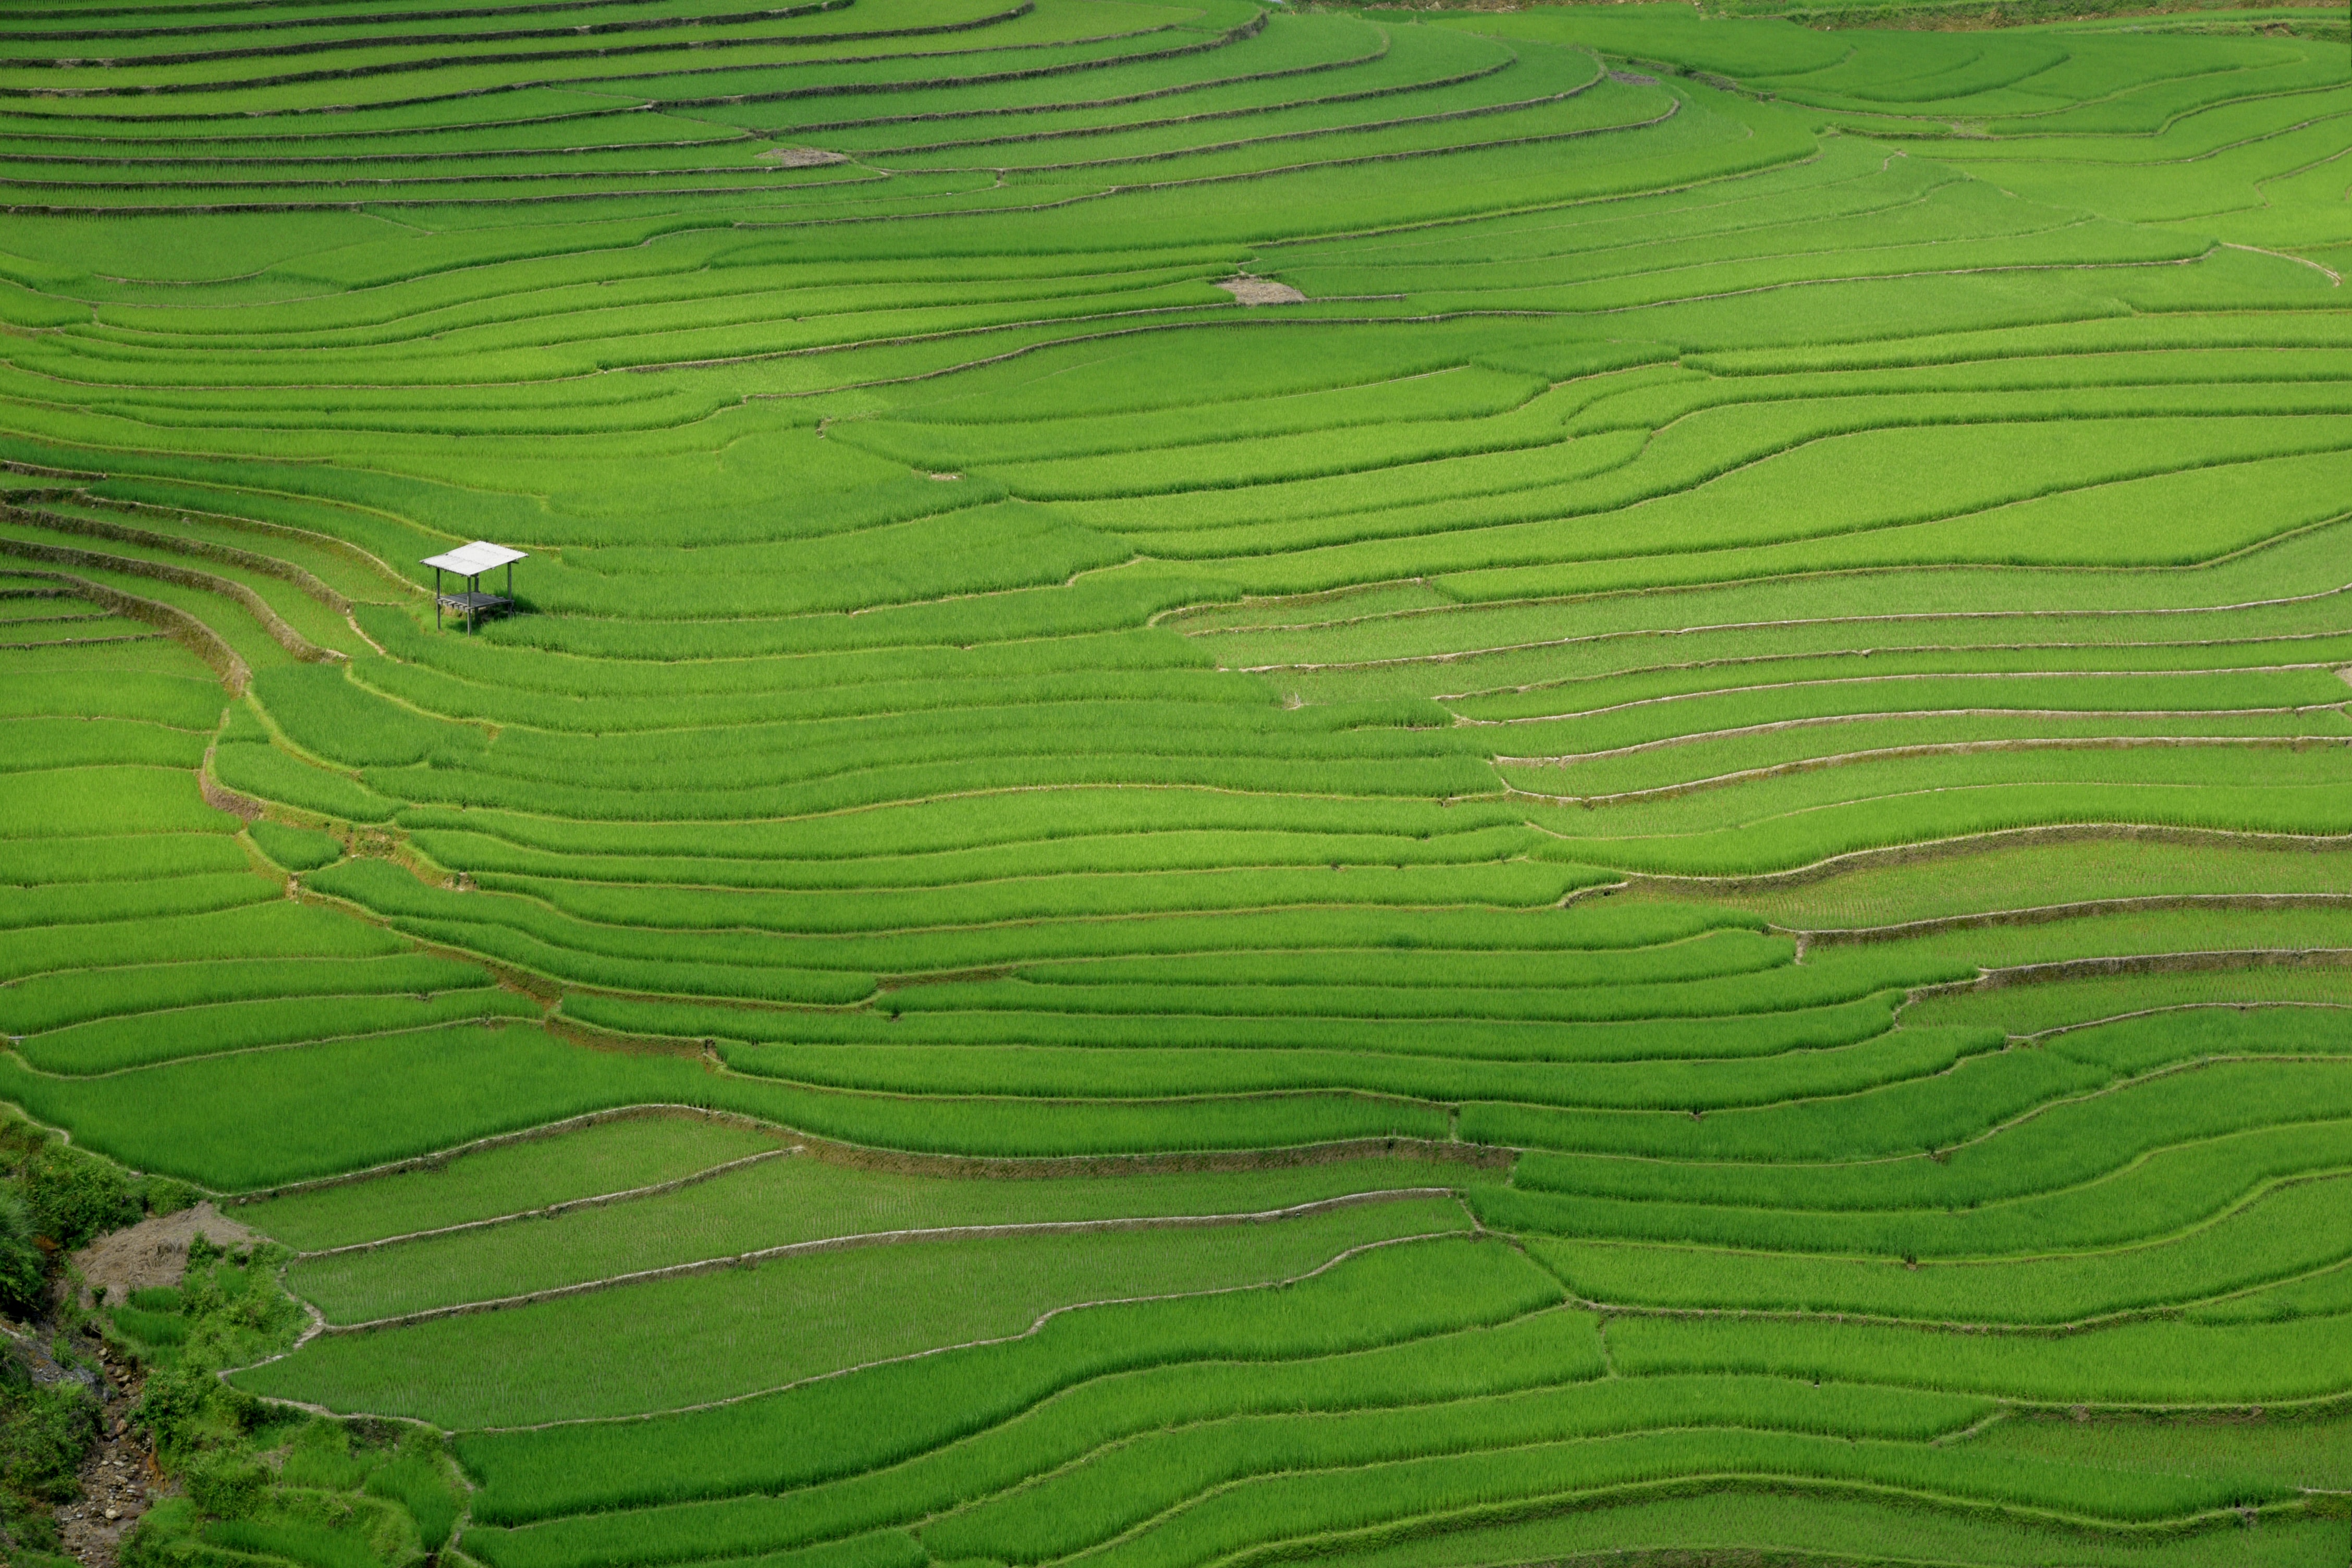 shed in the middle of the rice fields